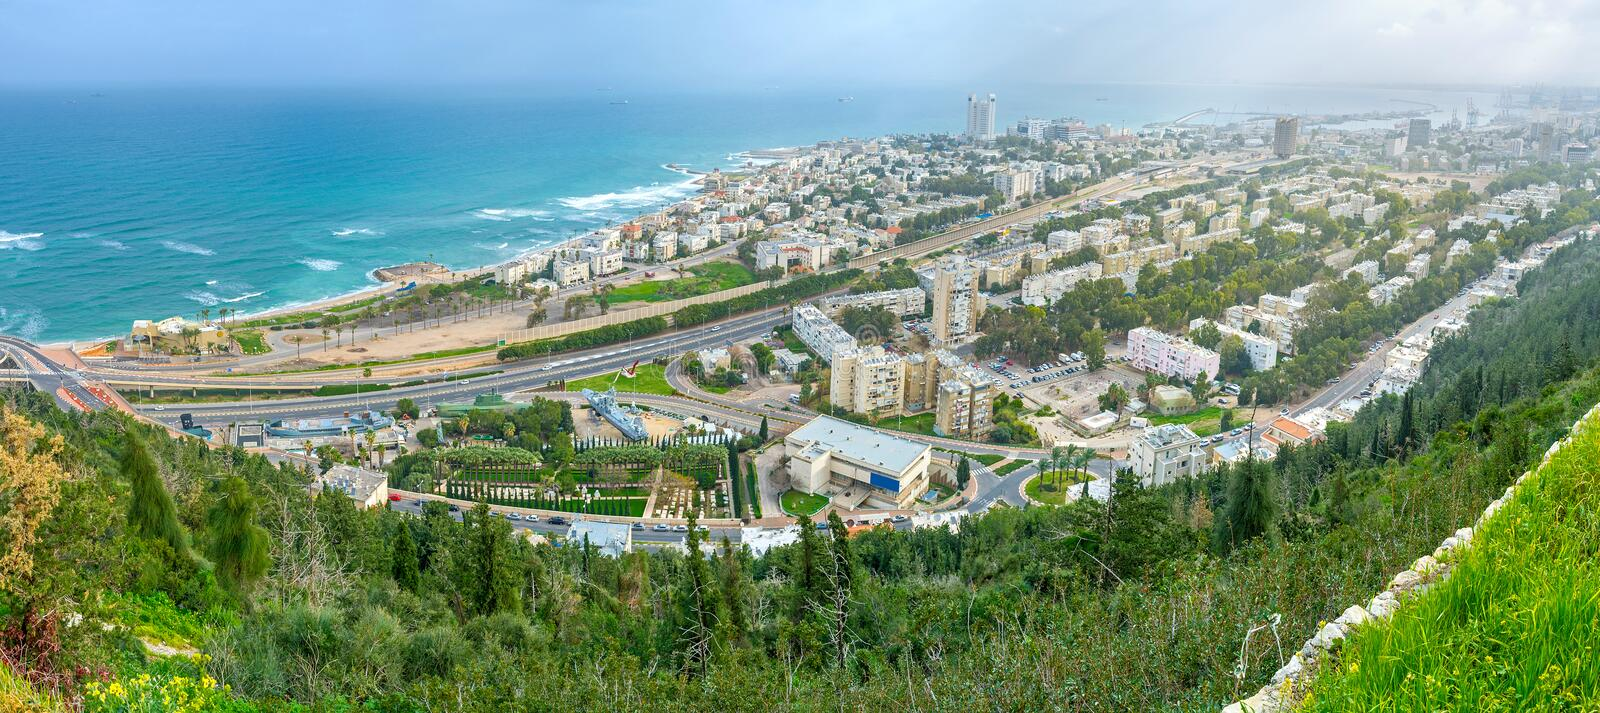 Panorama of Haifa. From the slope of Carmel Mount, overlooking residential districts, beaches and the coastline, Israel stock photo